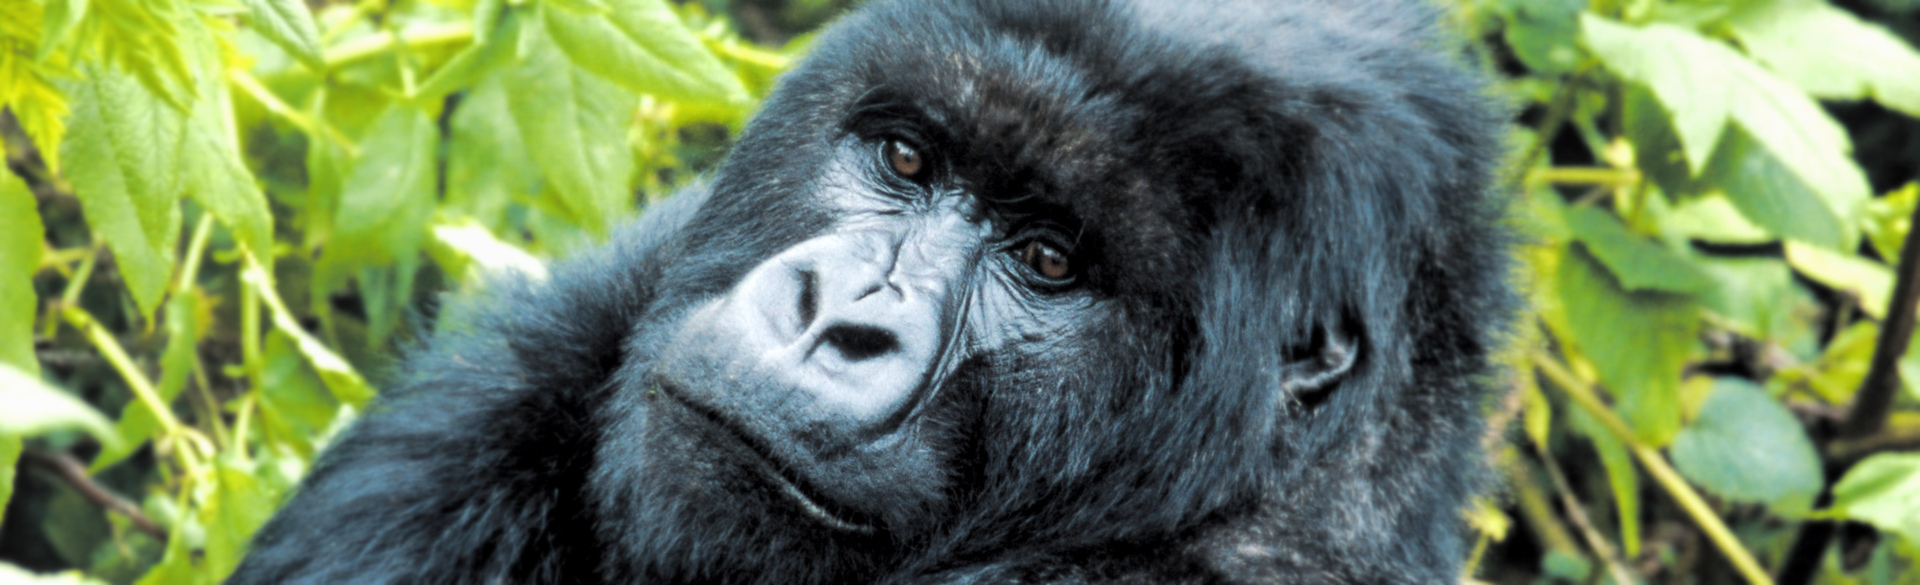 Mountain gorilla portrait courtesy Julie Brenner